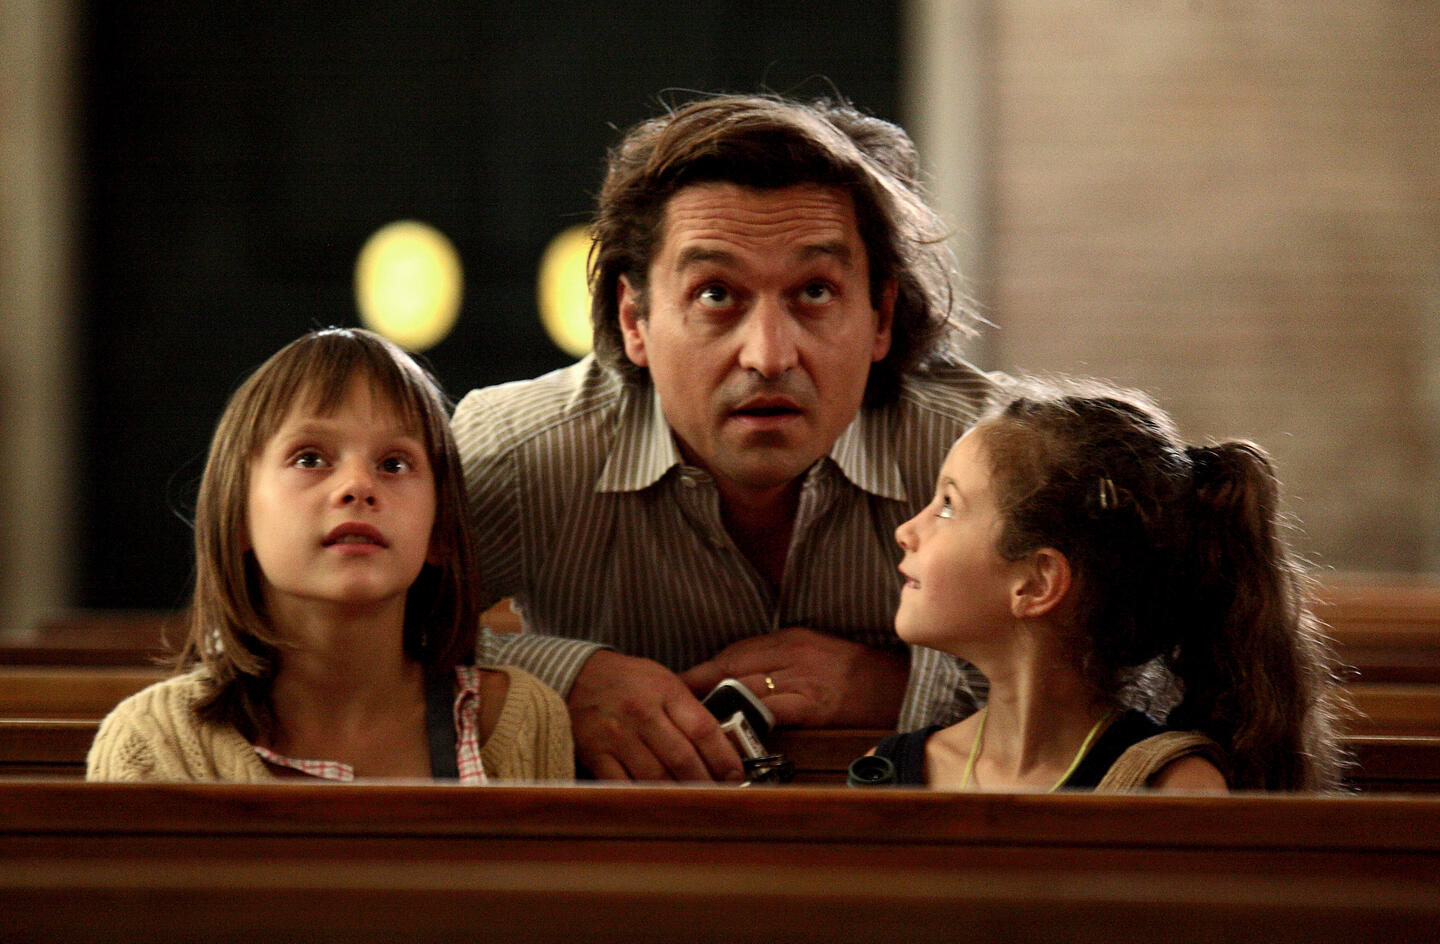 Man and children sat on a church pew